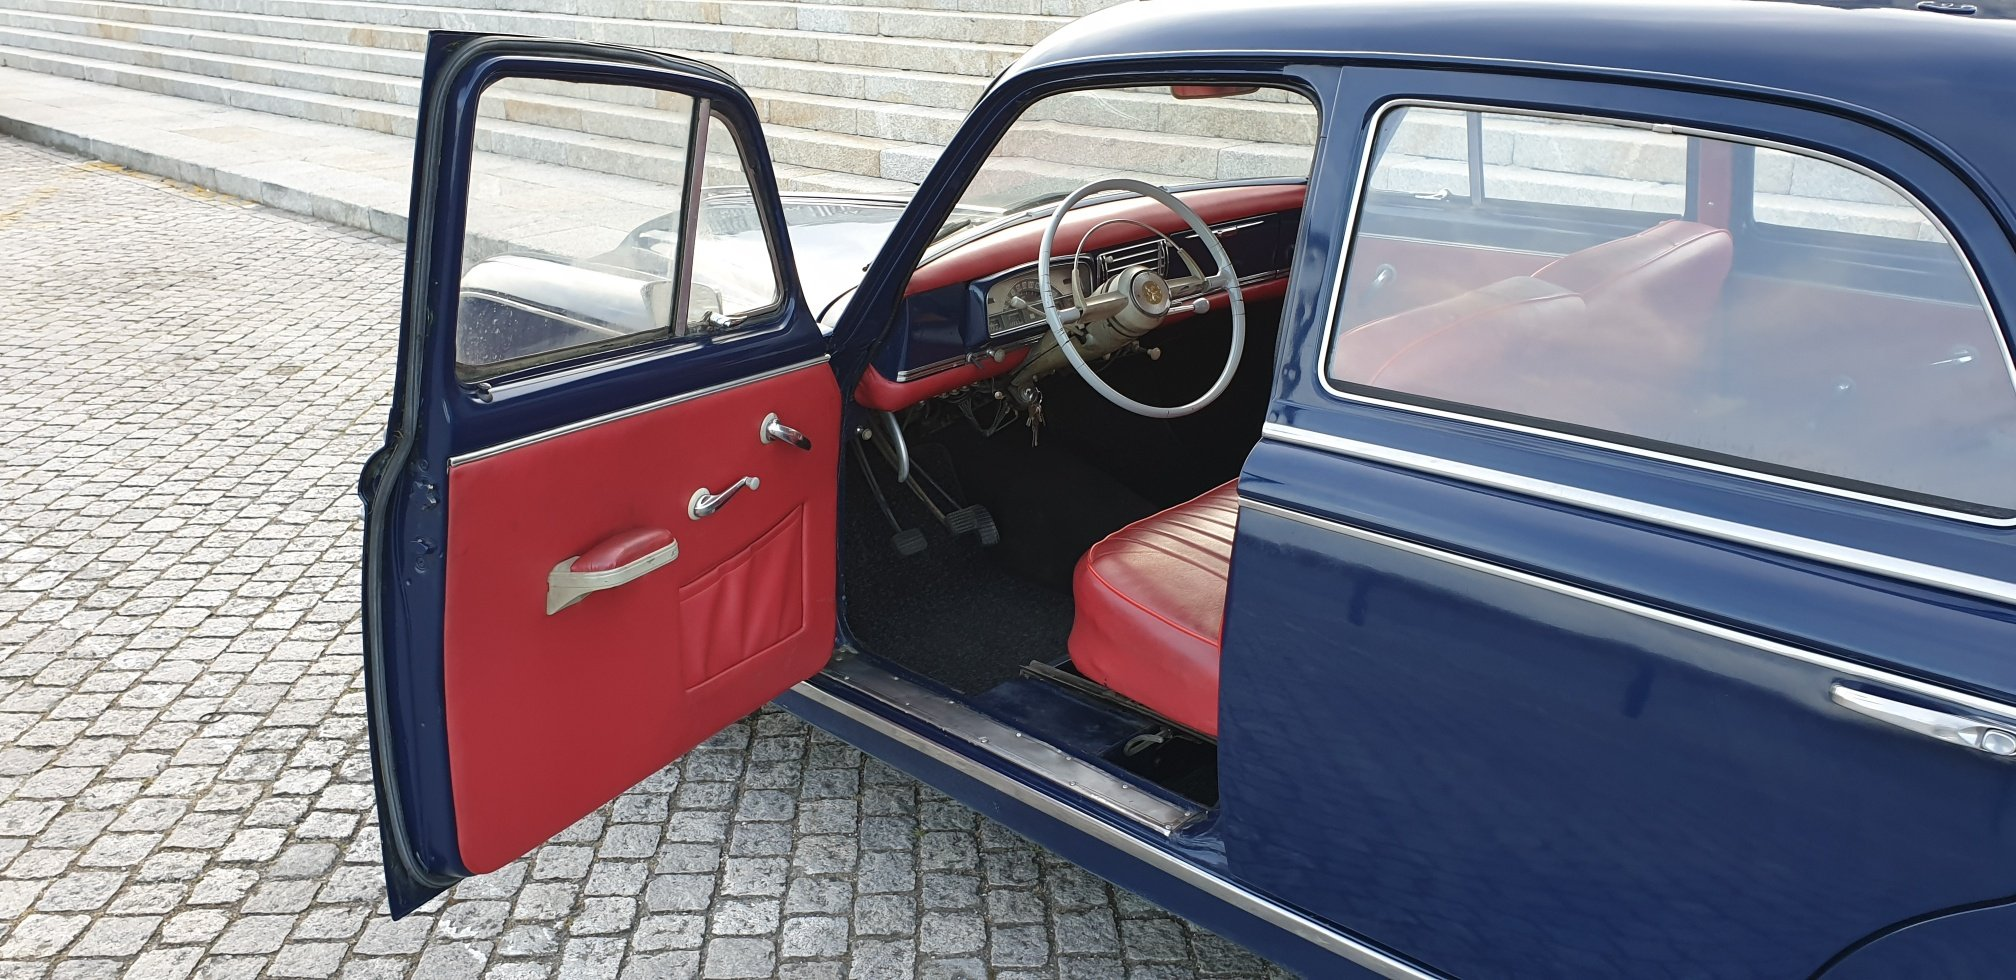 1960 Peugeot 403 Berline Grand Luxe for Sale For Sale (picture 6 of 6)